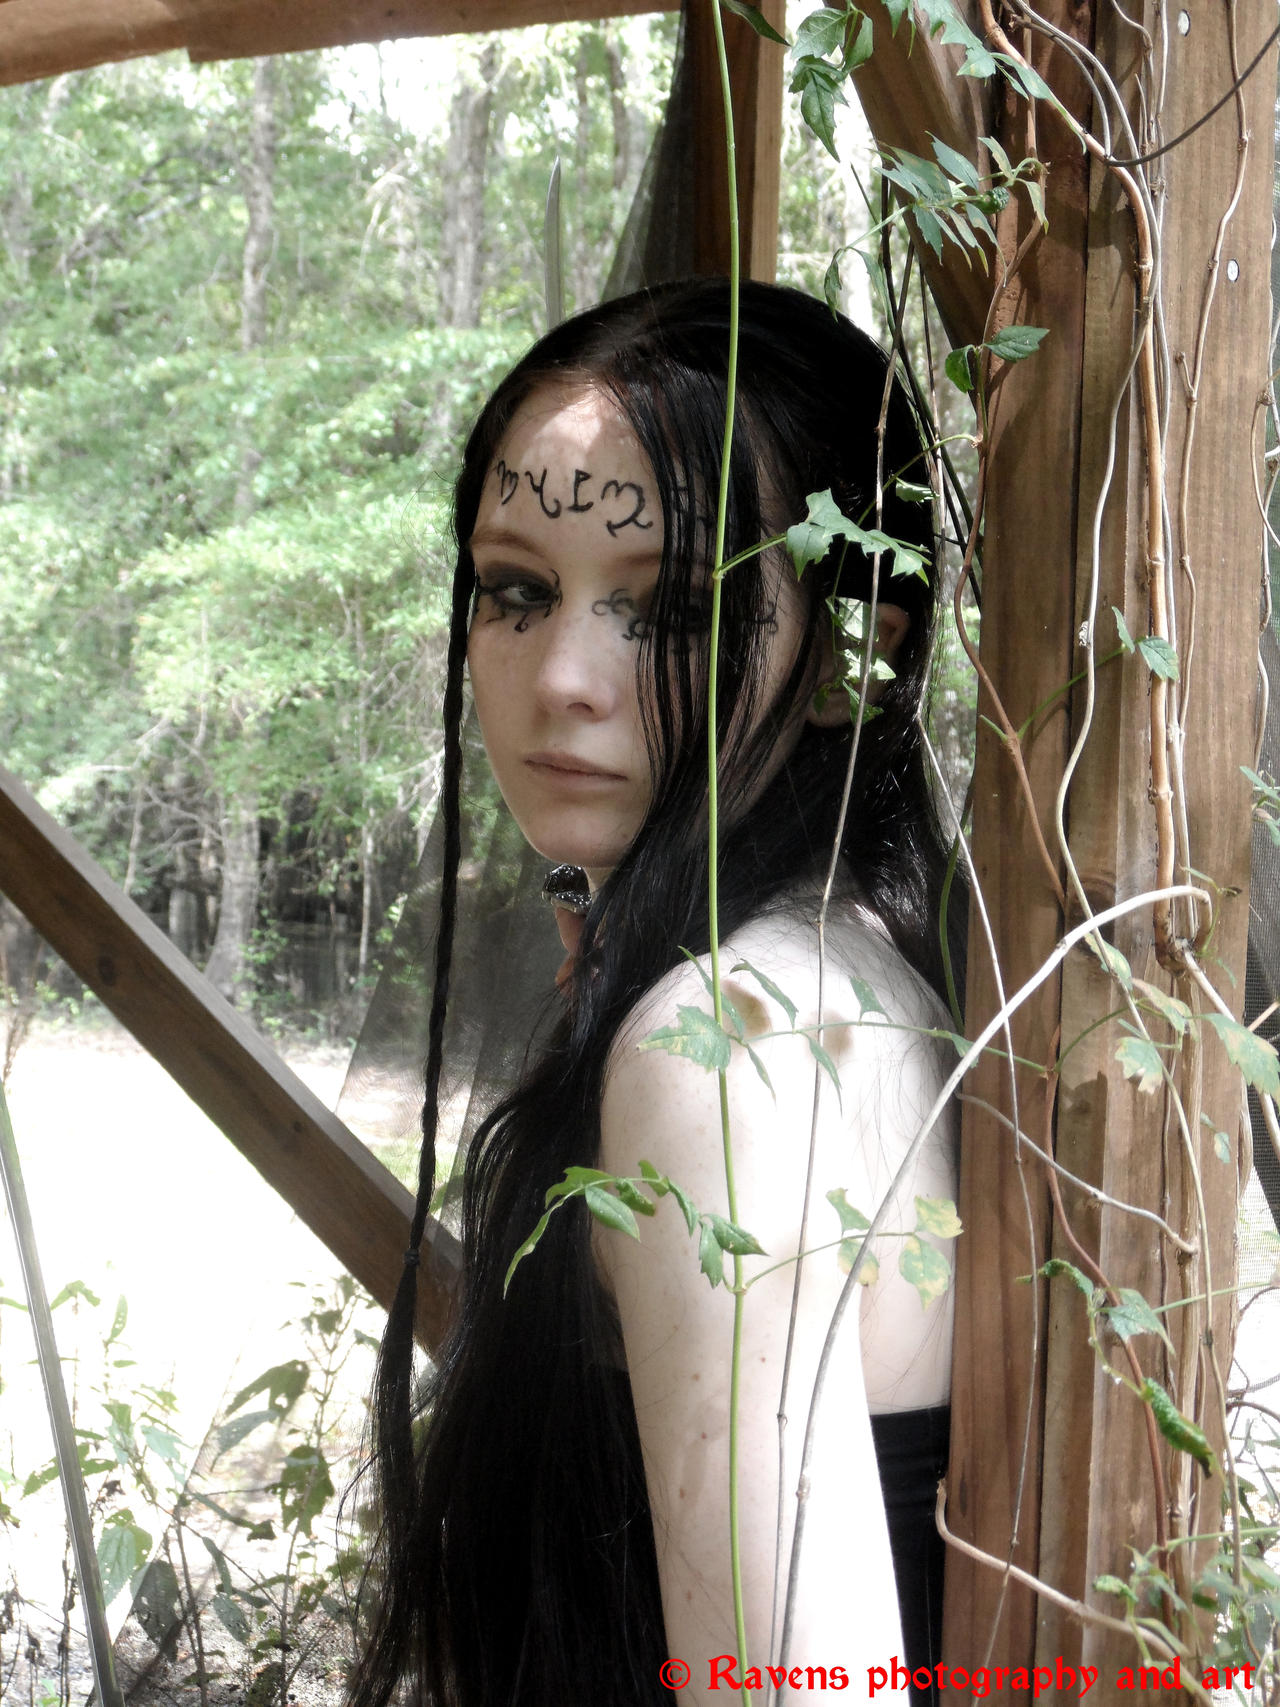 Theban Elf shoot 2, Watching out by GothicRavenMidnight